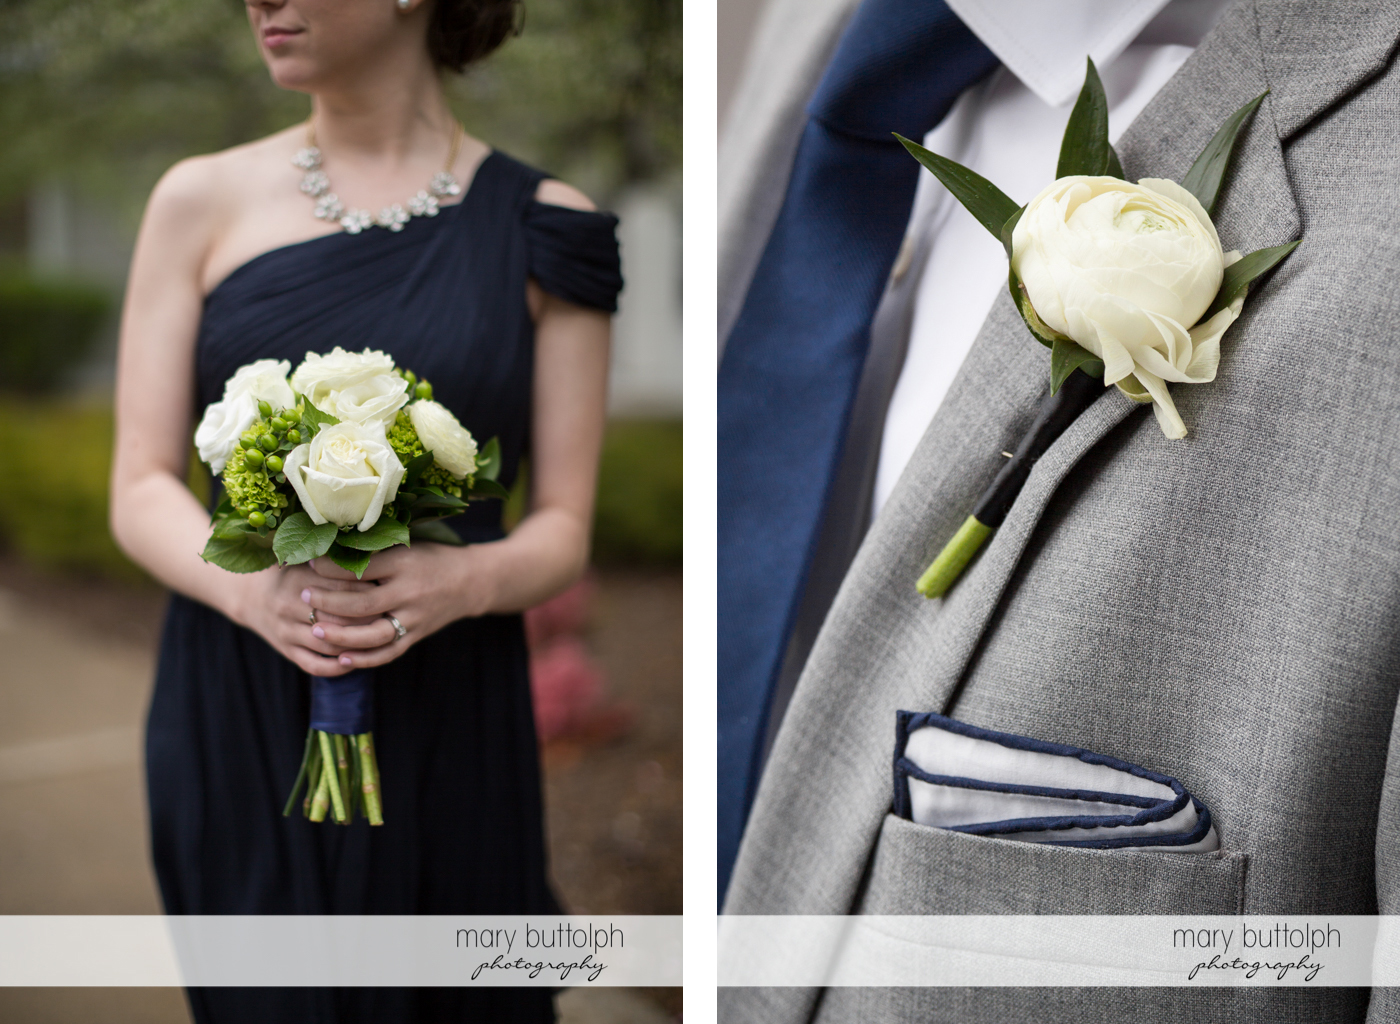 White flowers are used in the wedding at Skaneateles Country Club Wedding